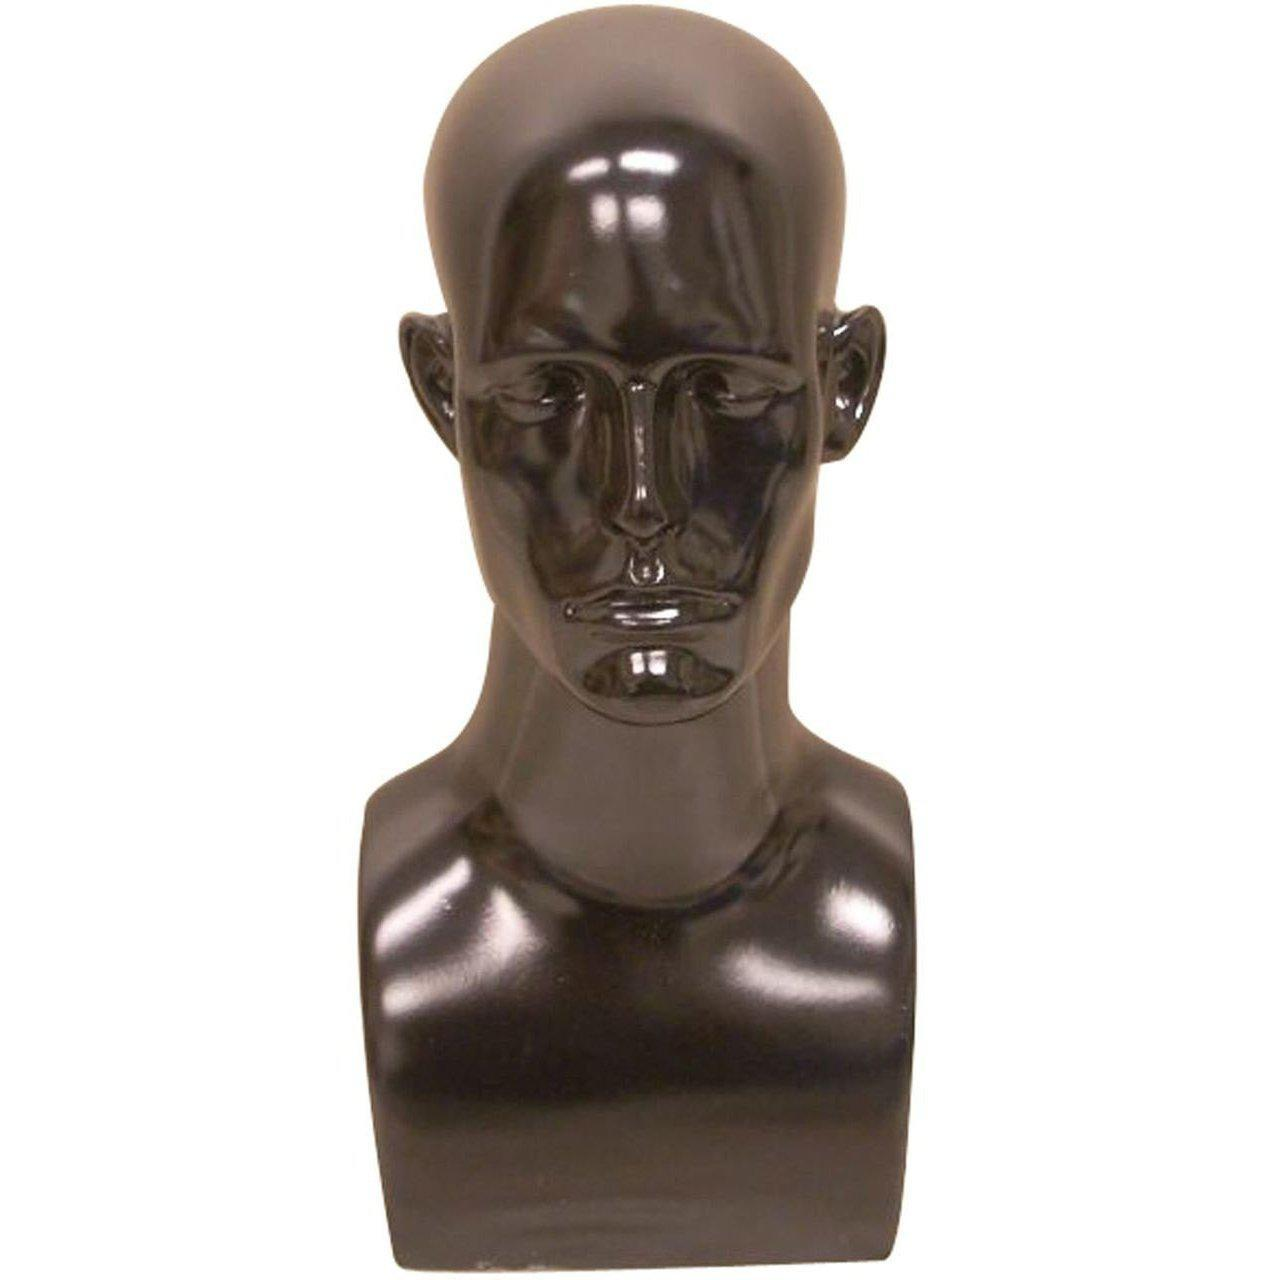 Mannequin Mall Male Mannequin Head MM-MDERABLACK For Fashion Stores and Retail Shops